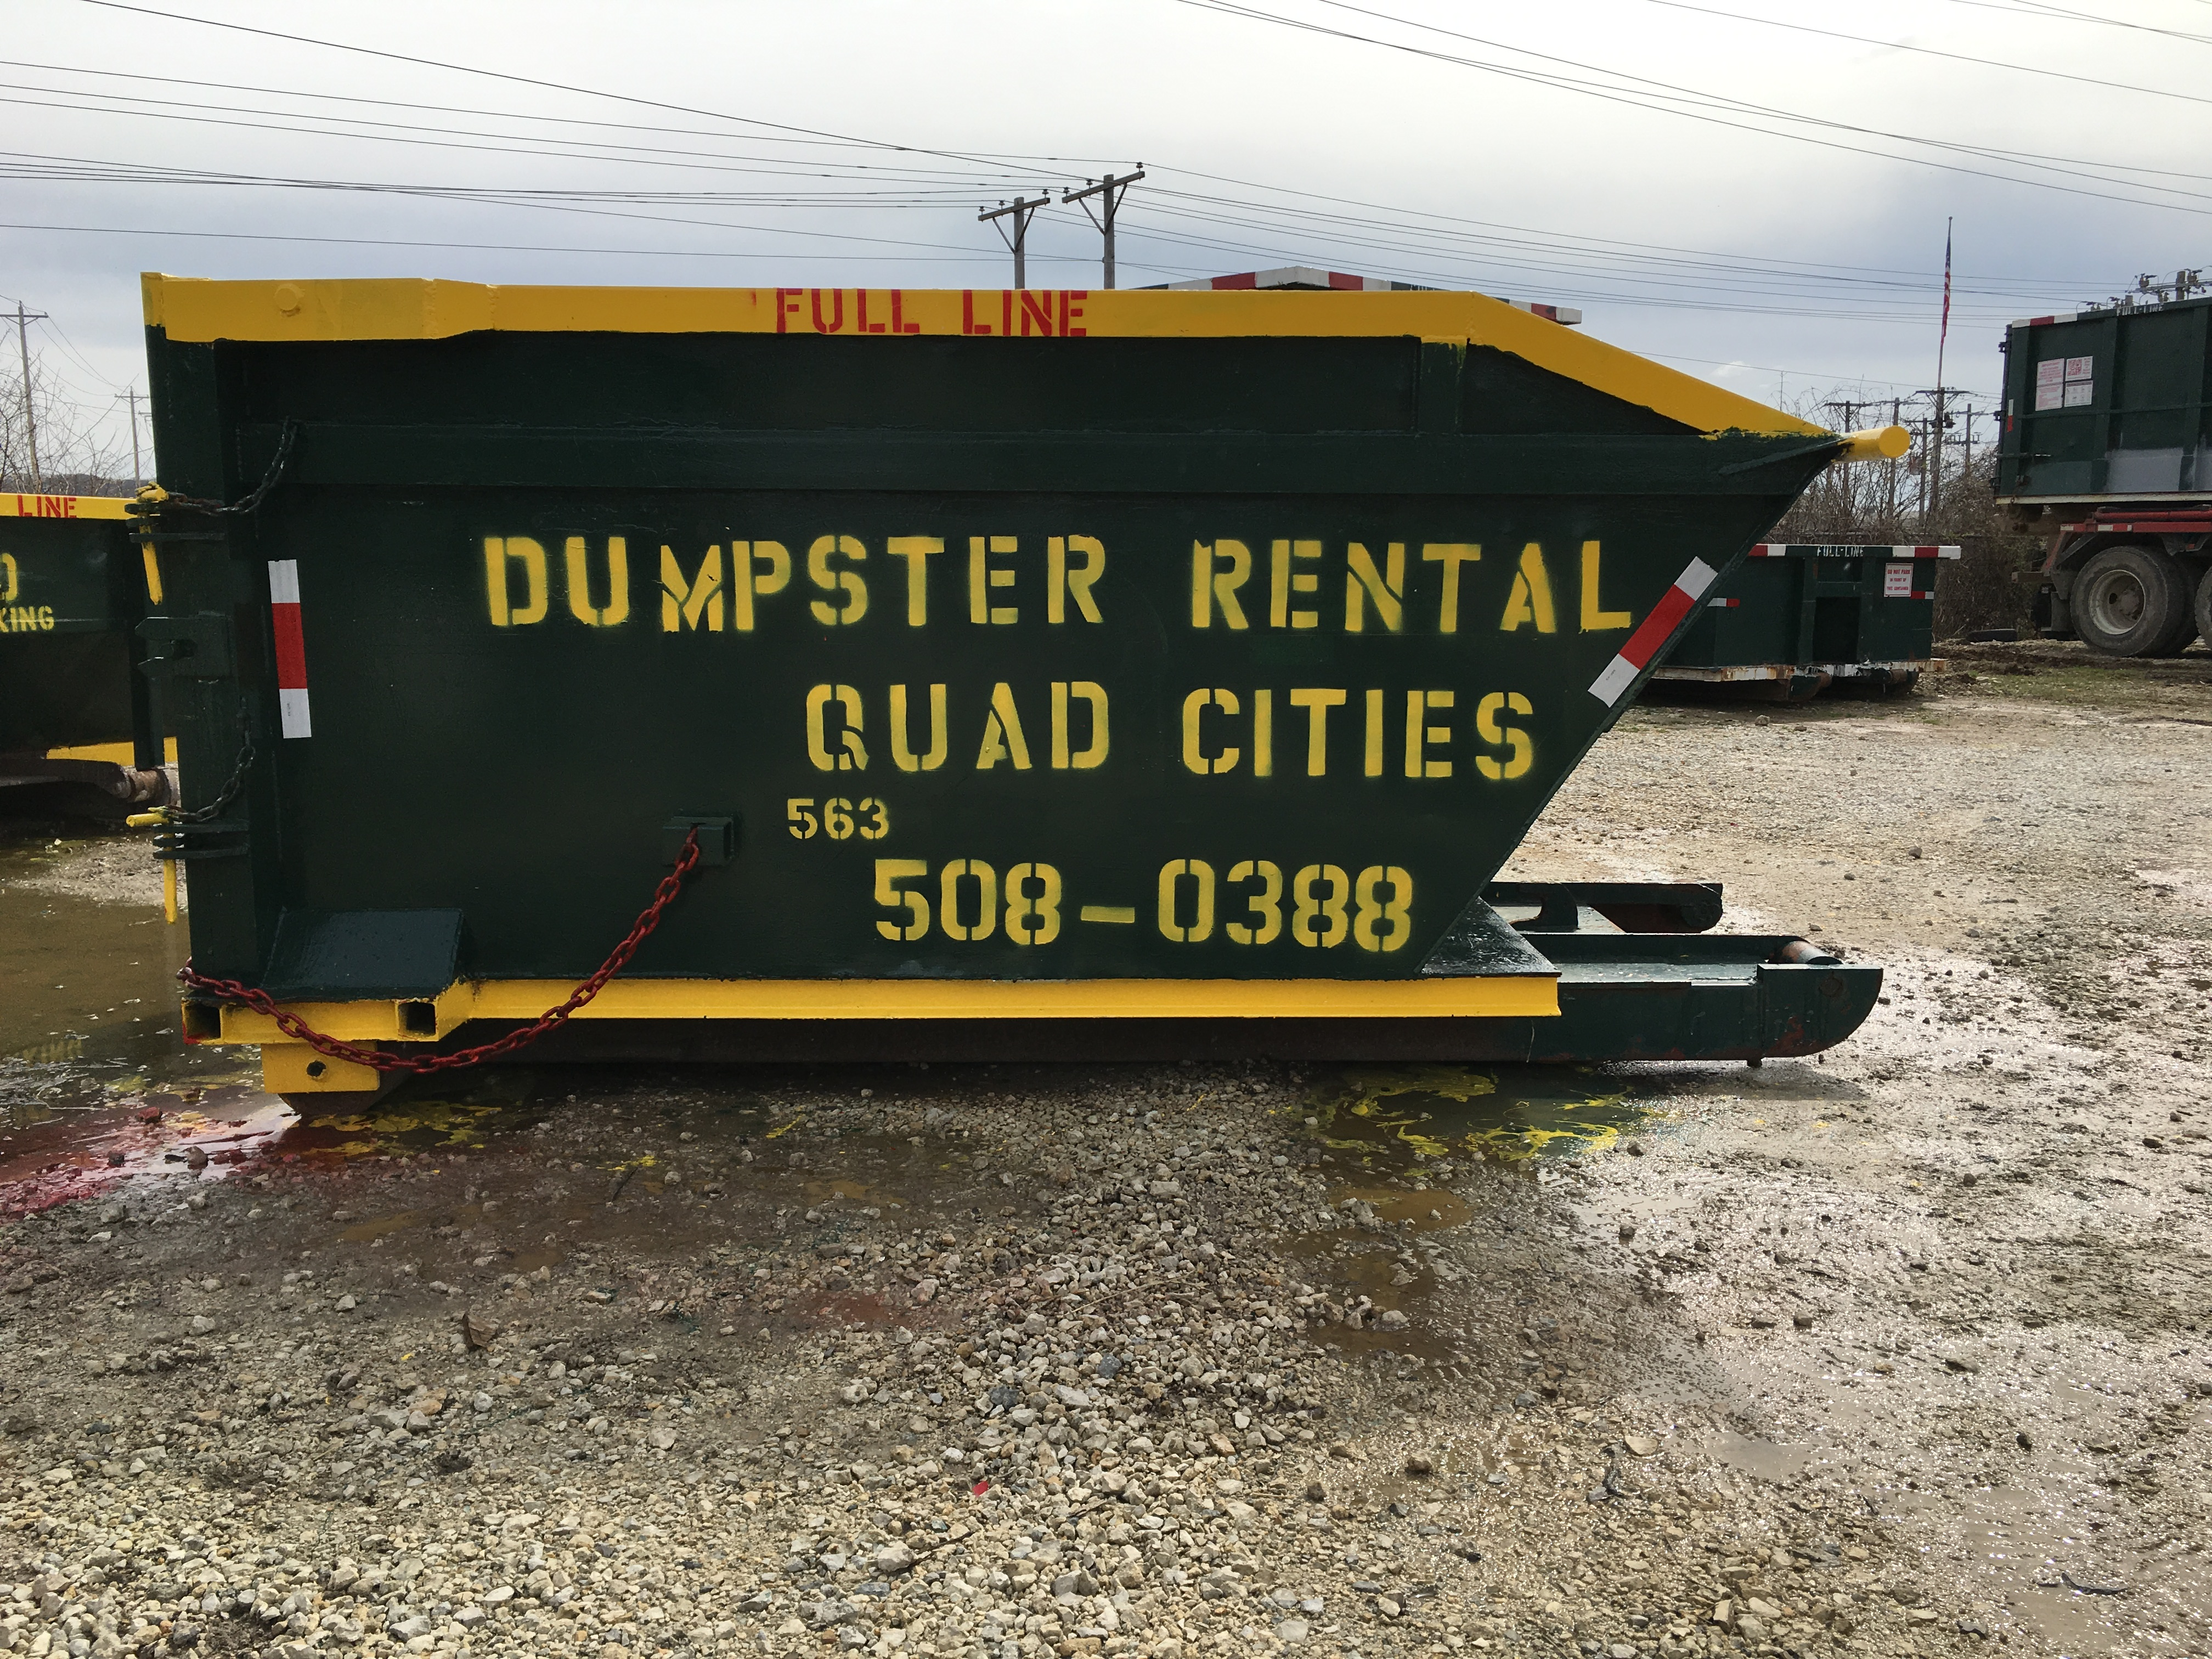 Dumpster Rental Quad Cities In Bettendorf Ia 52722